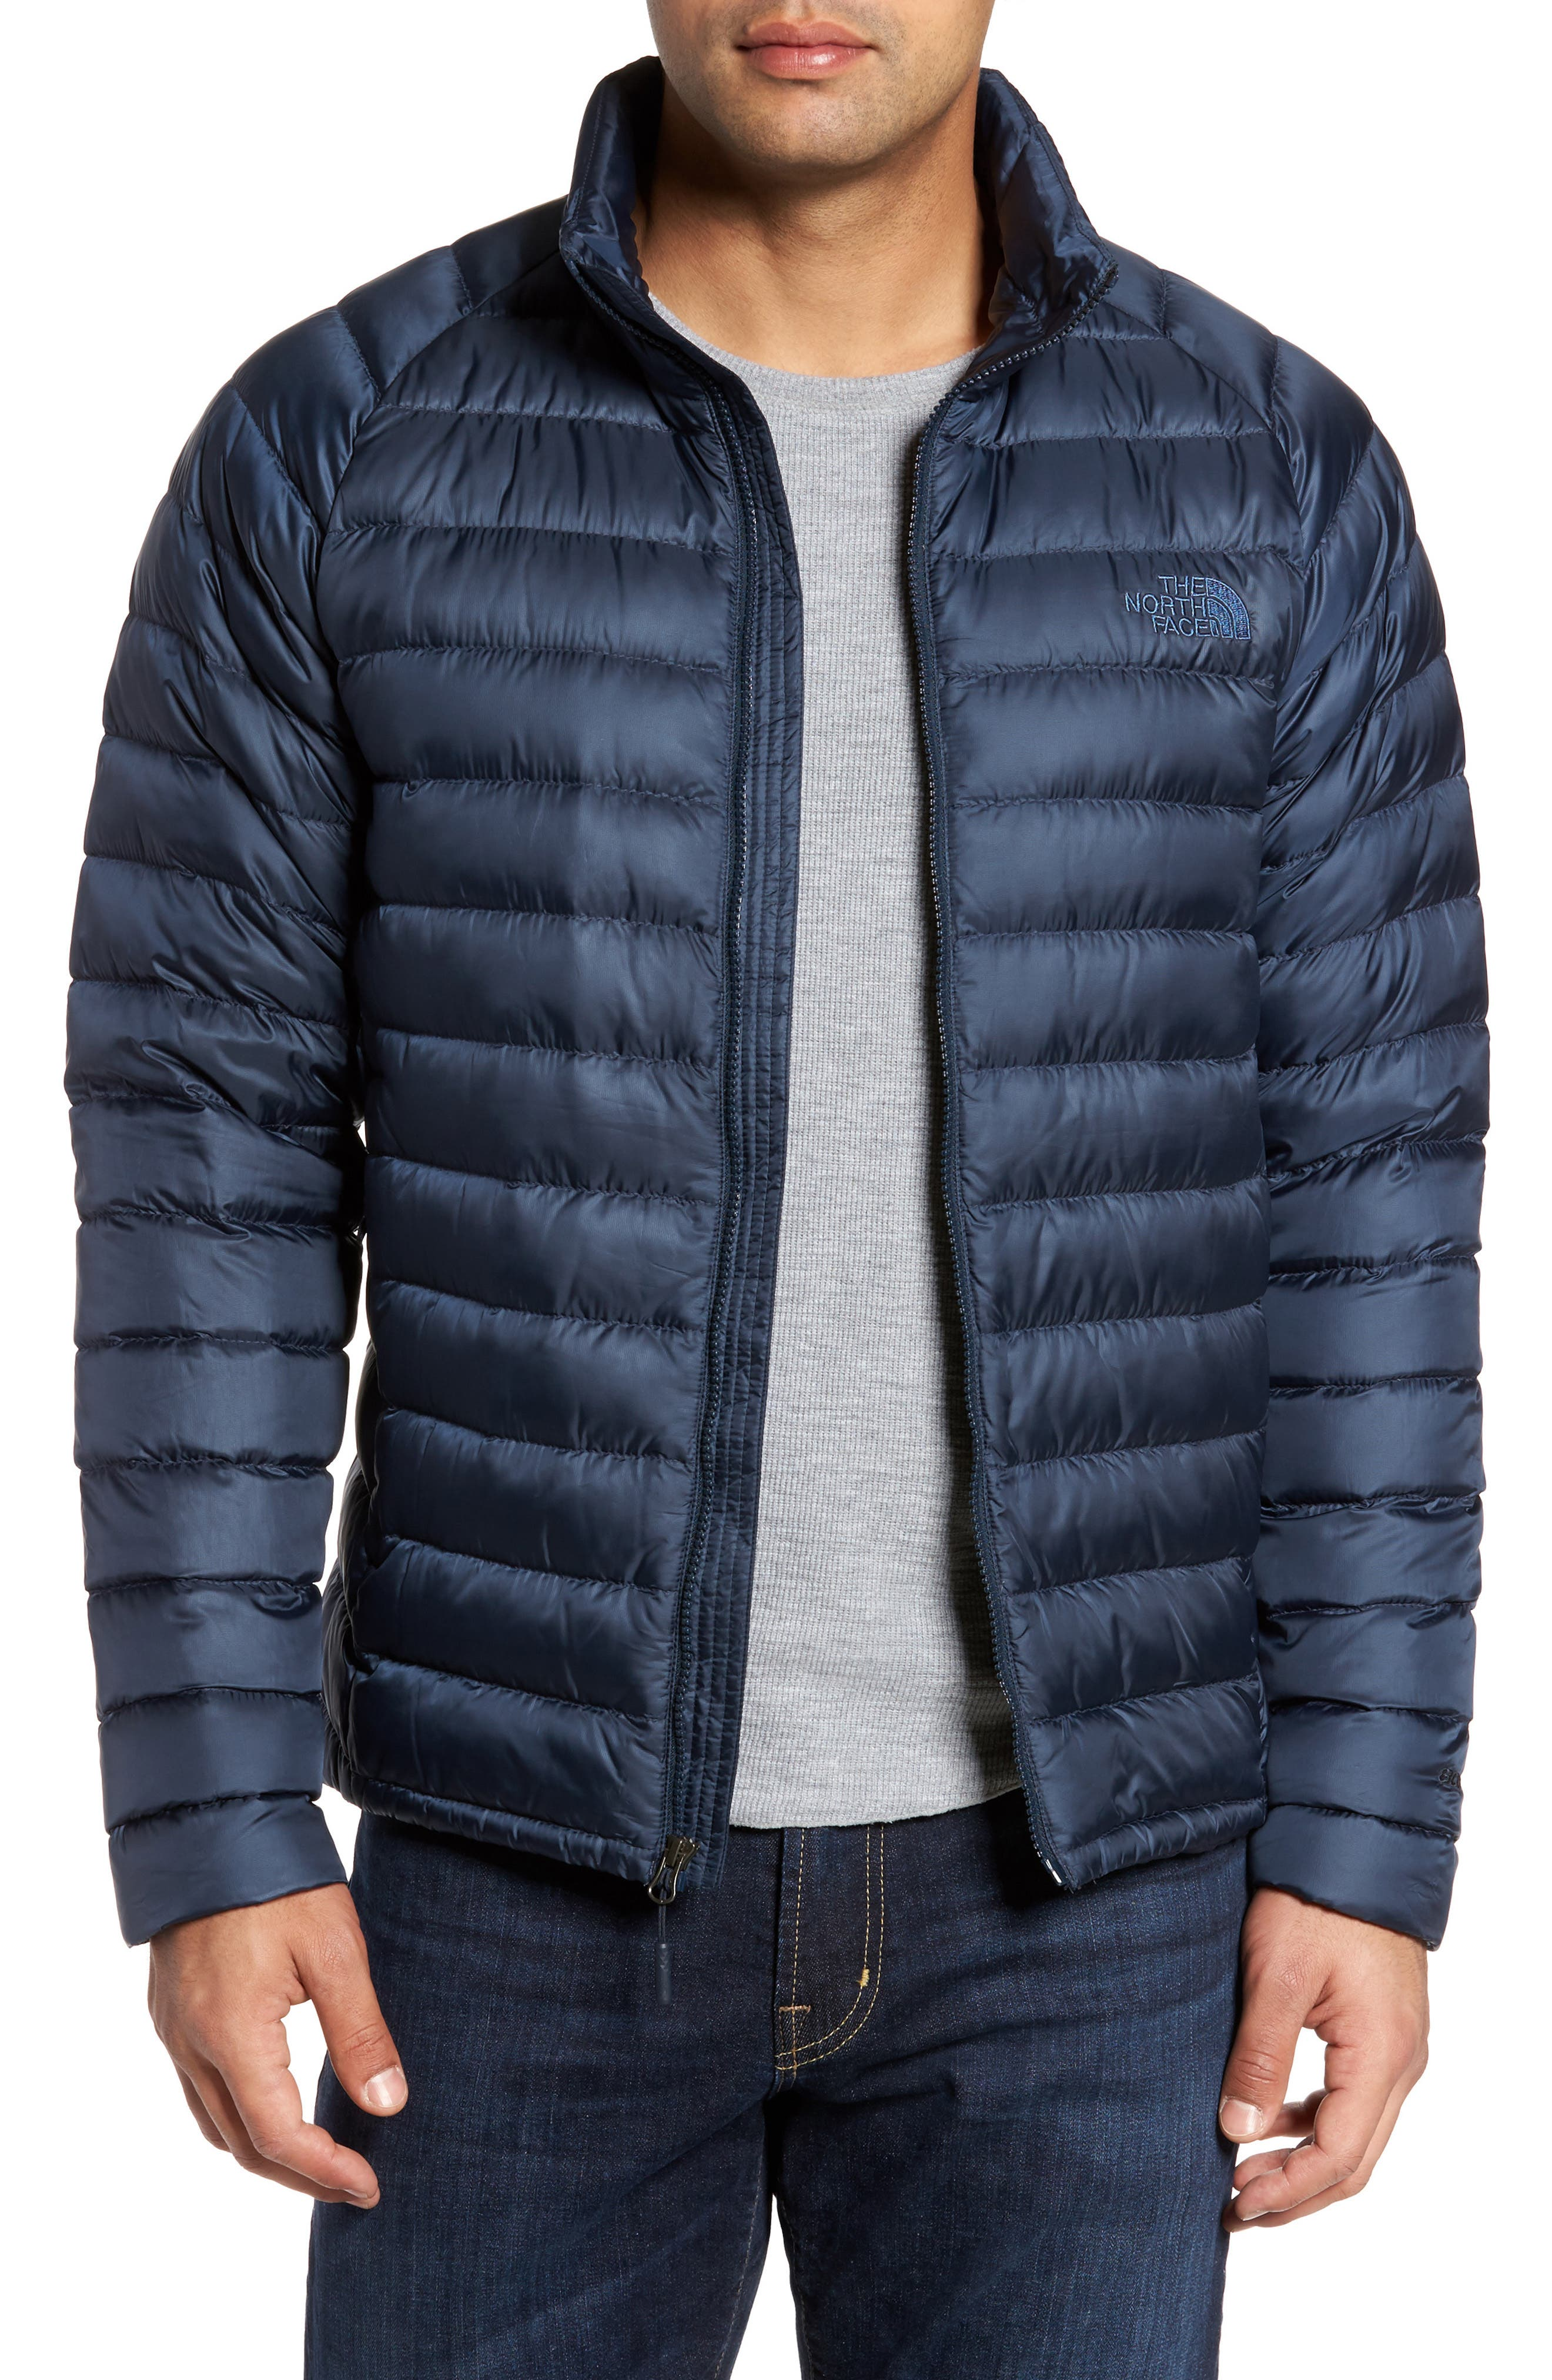 Trevail Water Repellent Packable Down Jacket,                         Main,                         color, Urban Navy/ Urban Navy